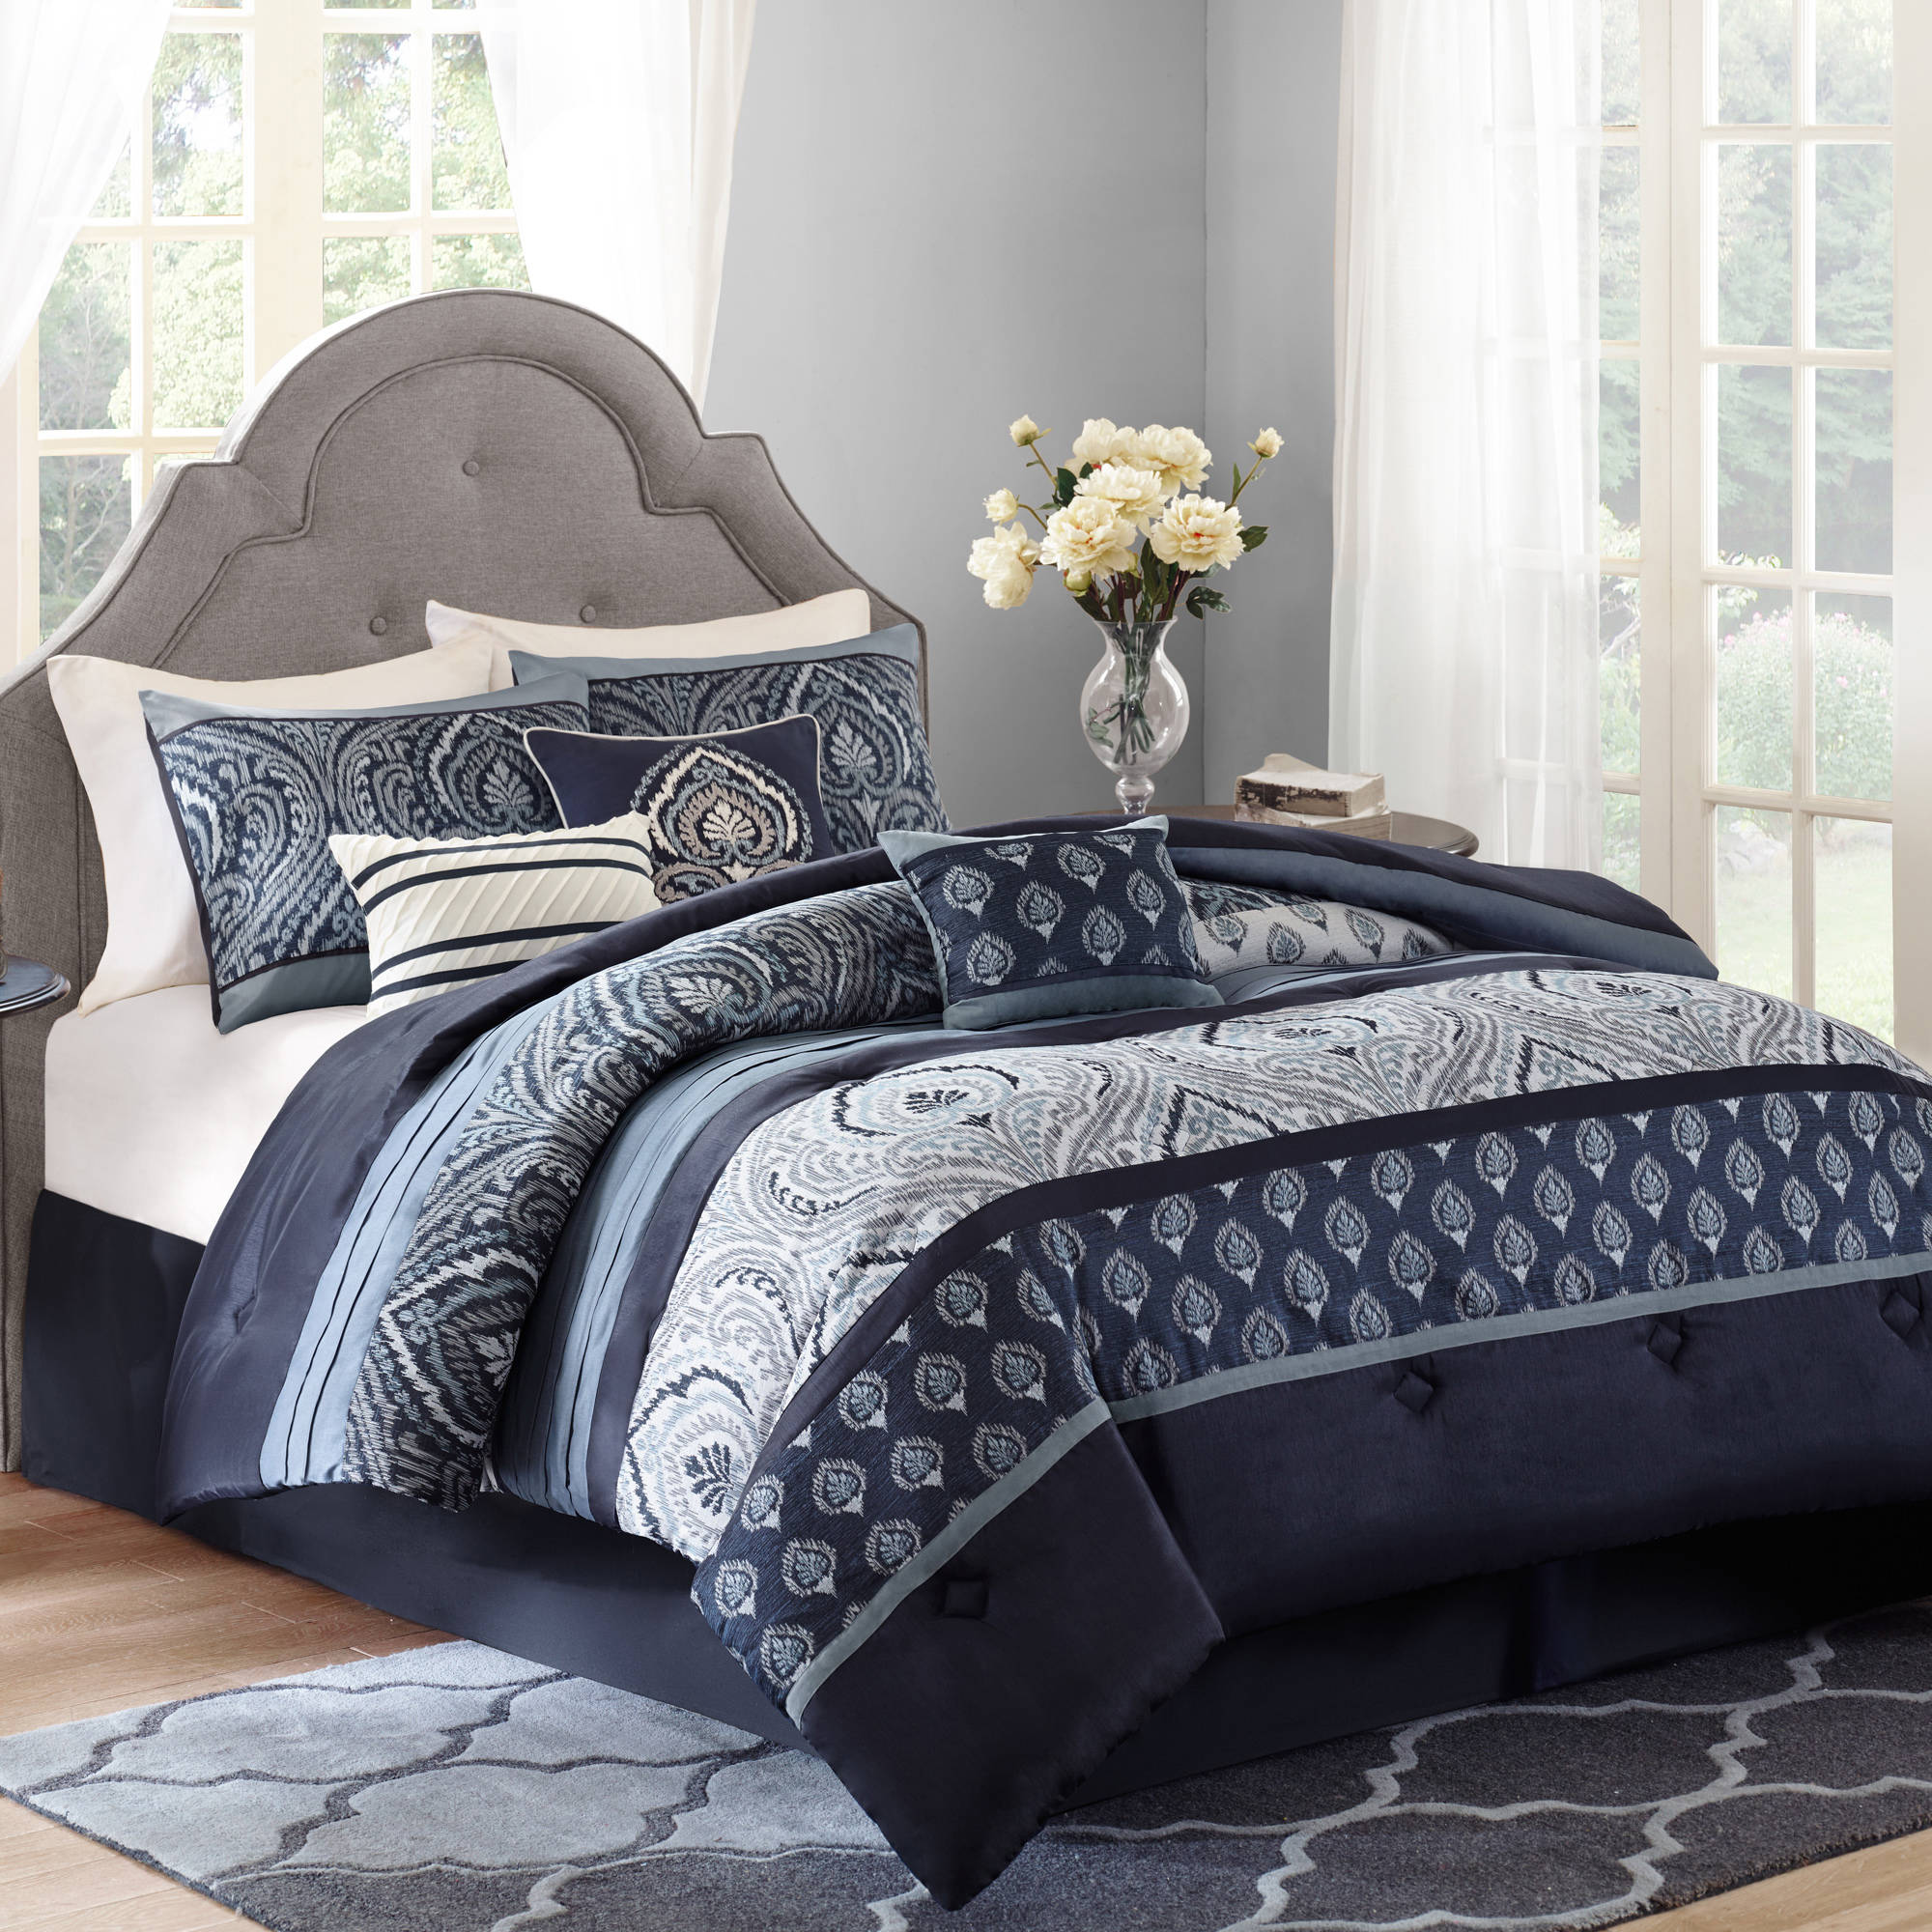 prod floral piece sets set b bed qlt wid spin sharpen lola print colormate comforters sears op hei bedding bath home comforter